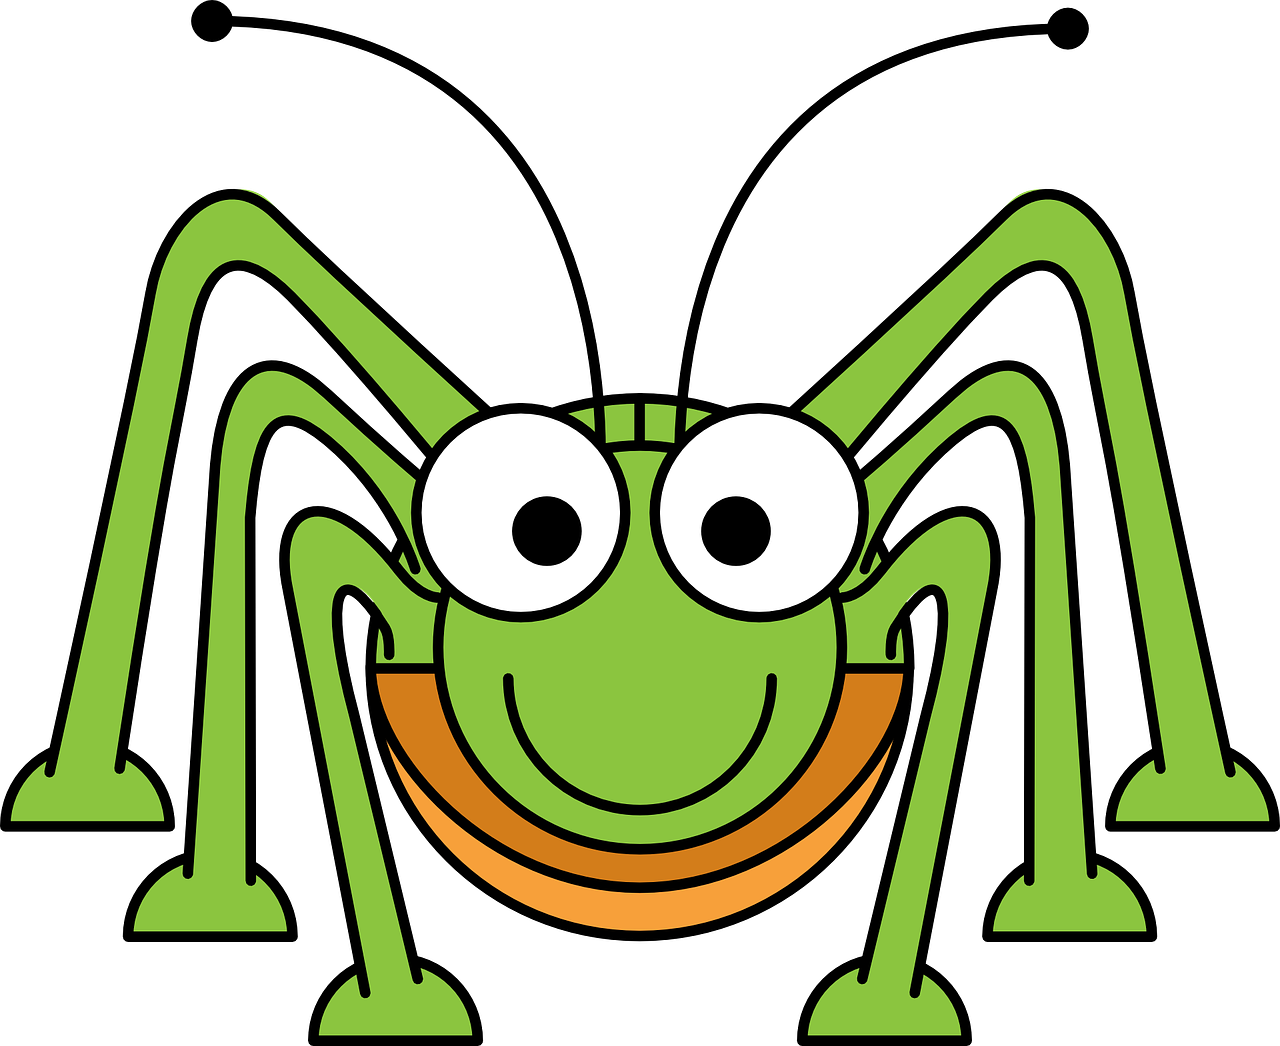 Caterpillar cricket png image. Insect clipart bug